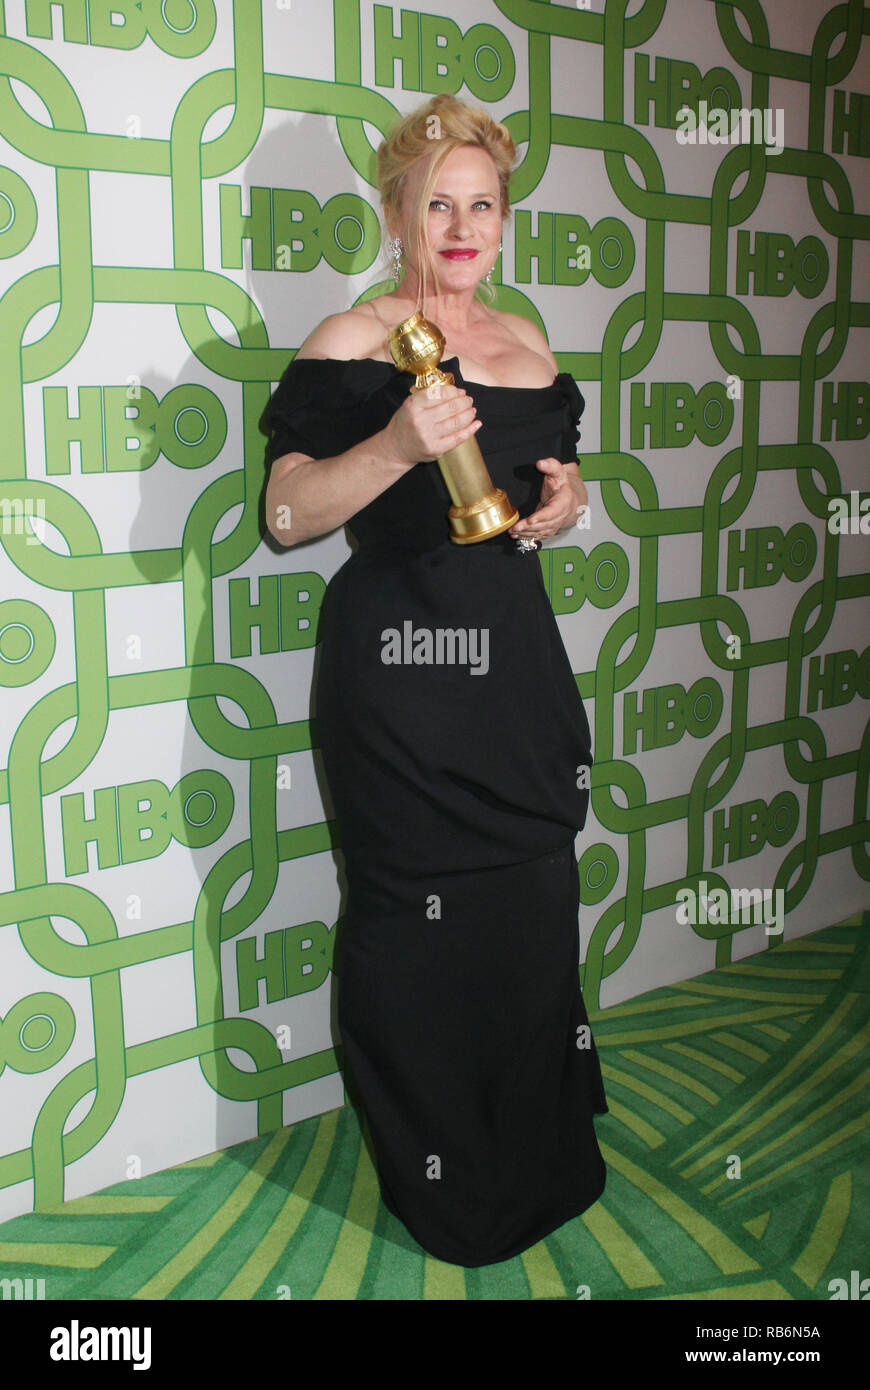 Patricia Arquette  01/06/2019 The 76th Annual Golden Globe Awards HBO After Party held at the Circa 55 Restaurant at The Beverly Hilton in Beverly Hills, CA  Photo: Cronos/Hollywood News Stock Photo